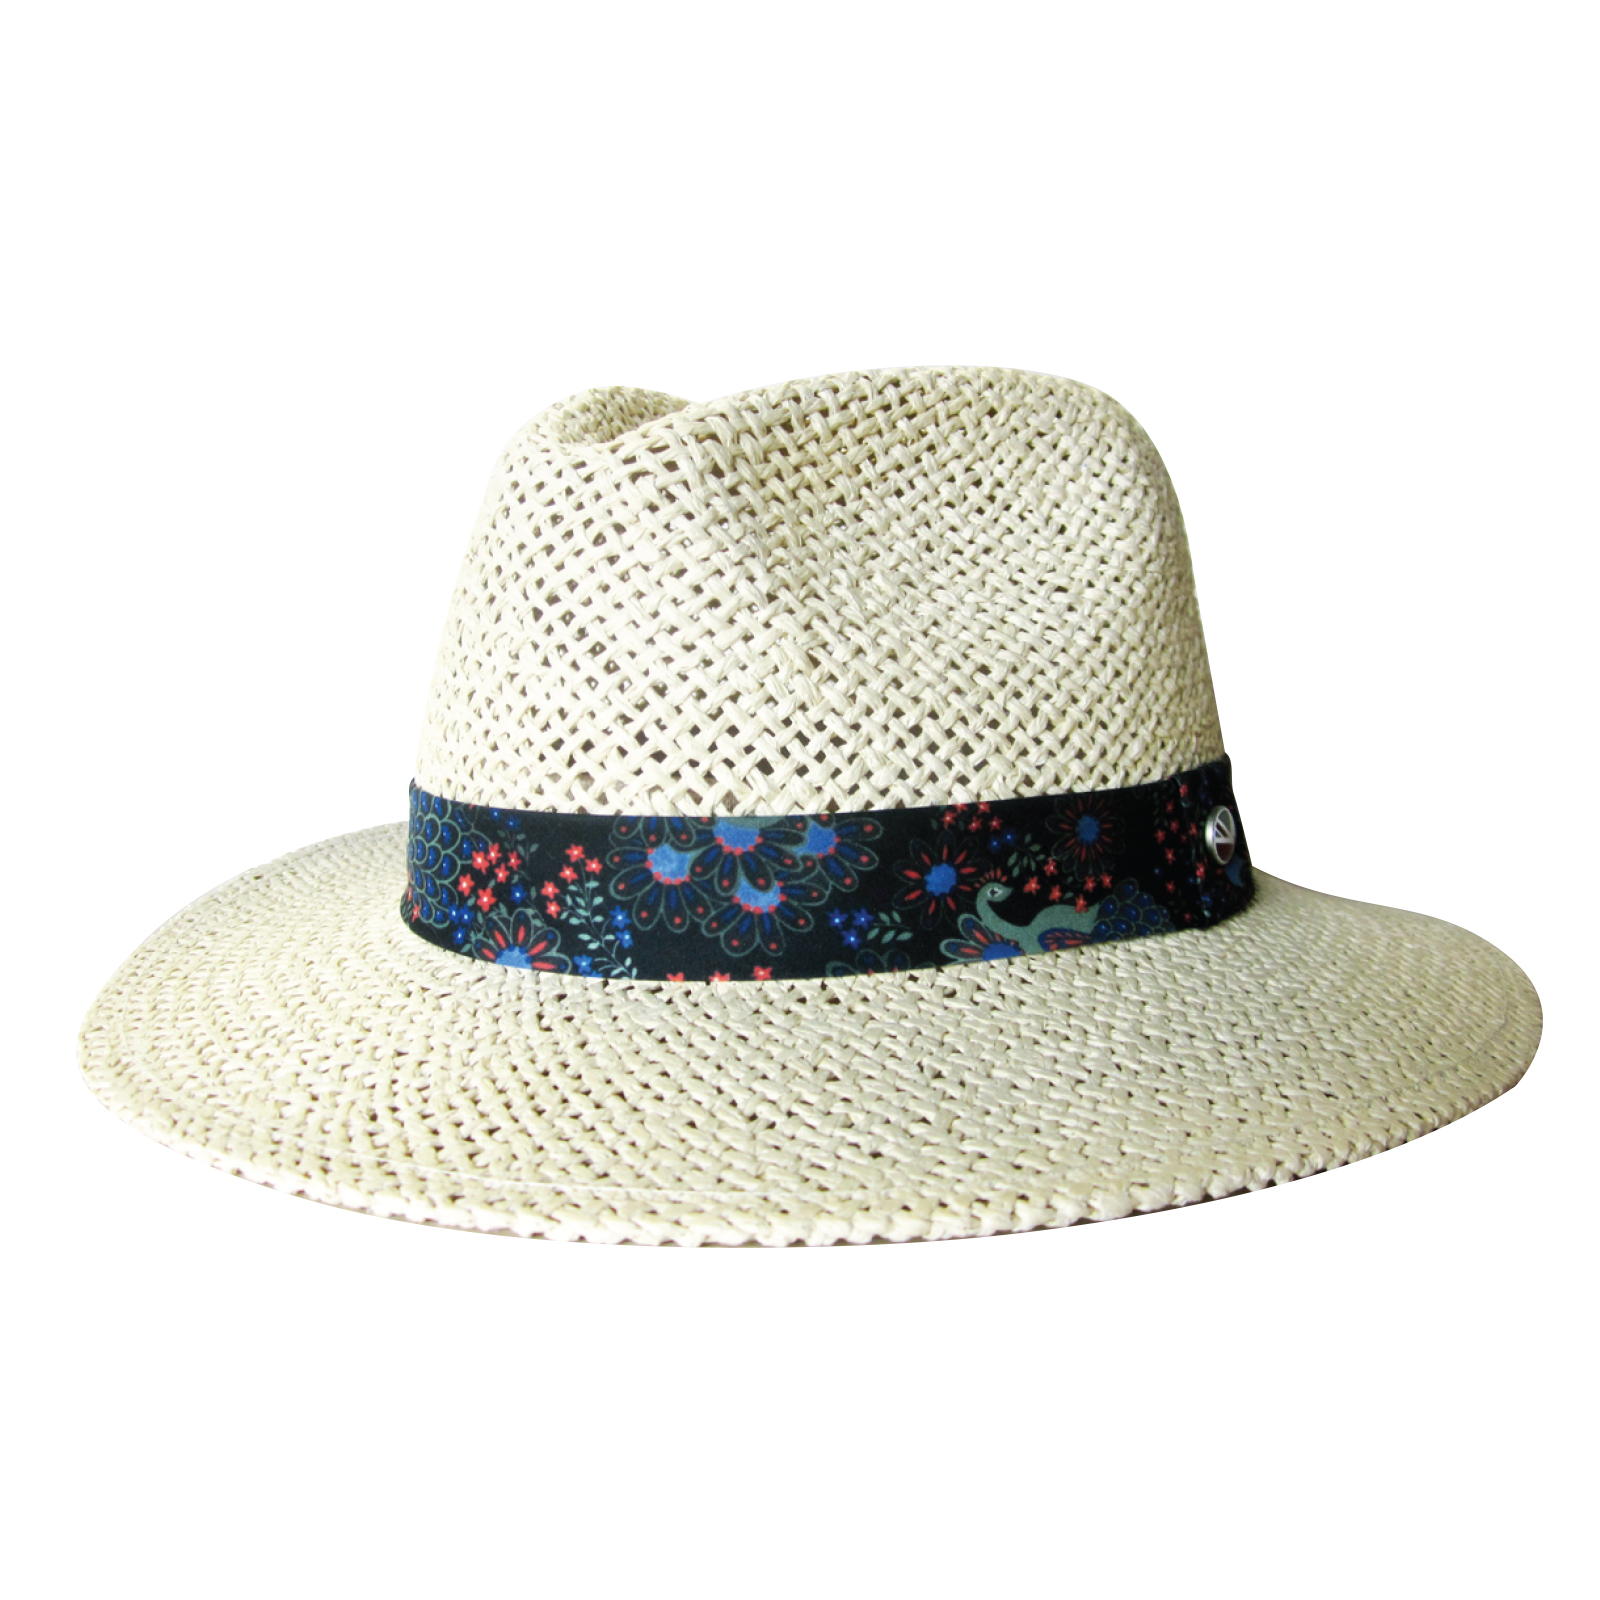 a67397529 Details about Ben Sherman Brody Mens Natural Summer Beach Sunhat Fedora  Straw Panama Style Hat